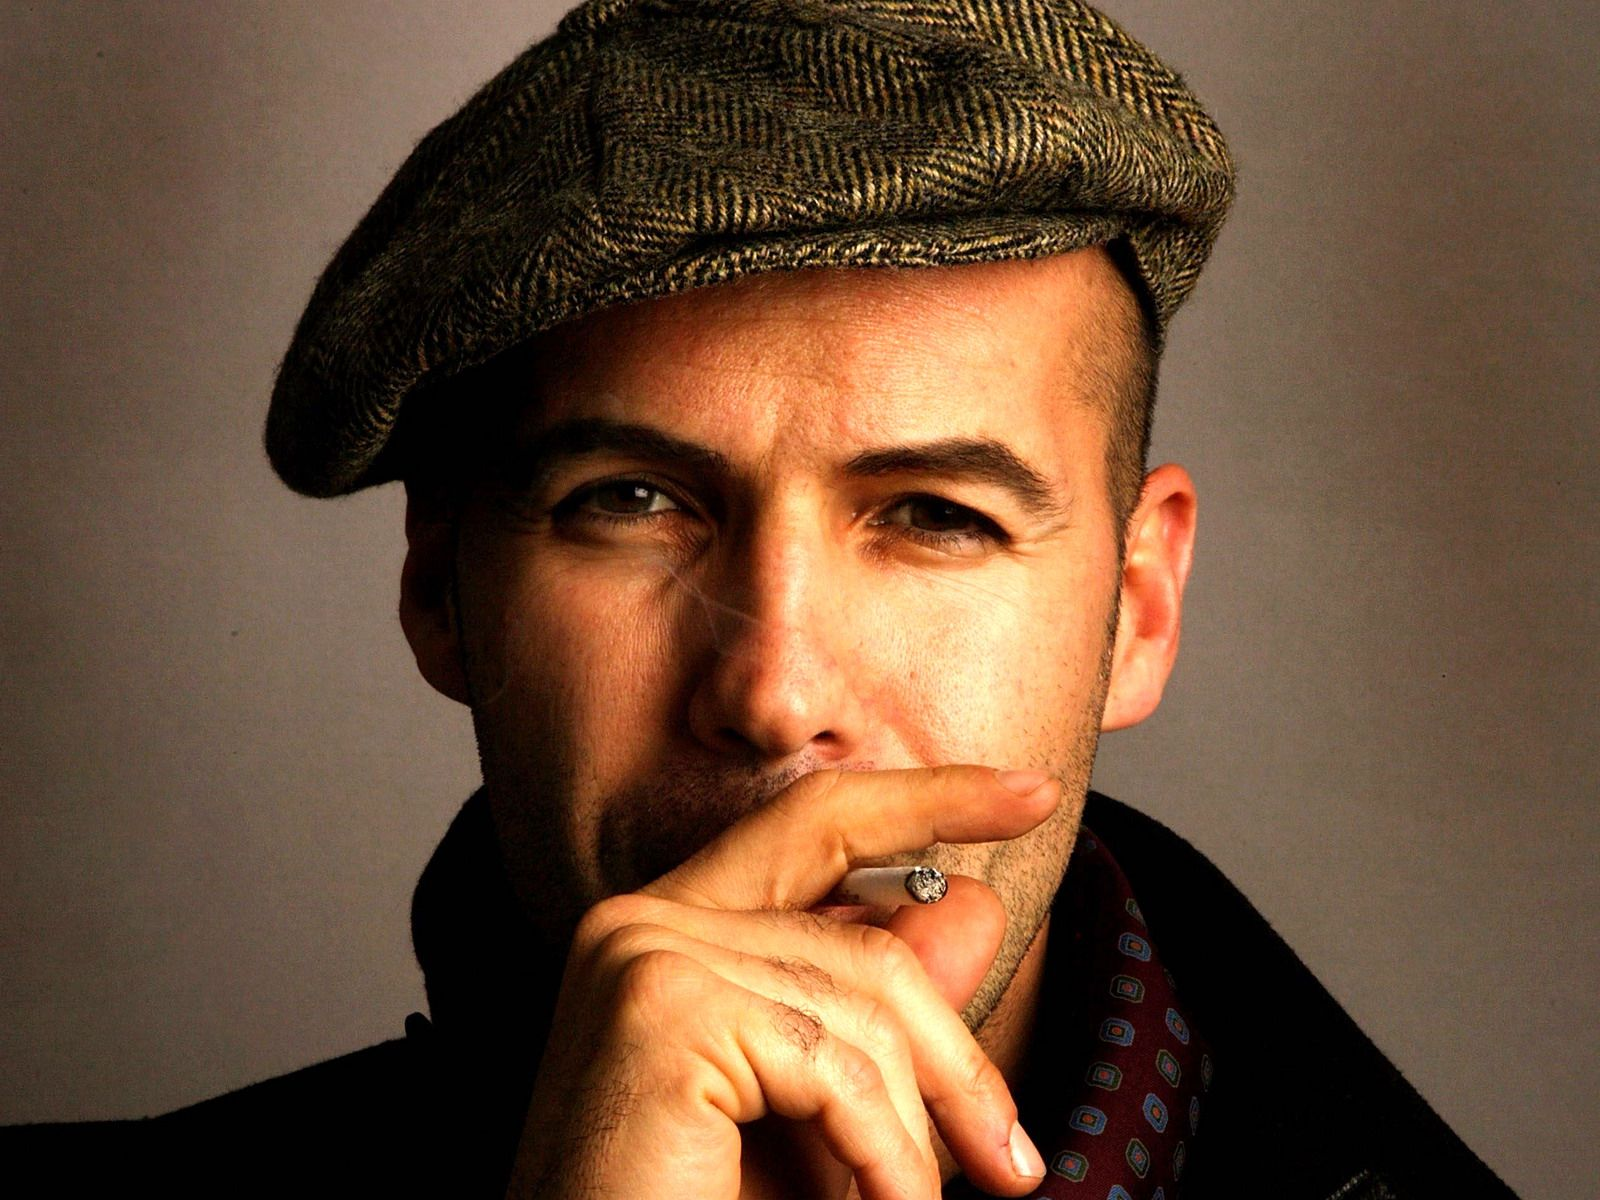 billy zane - Google Search